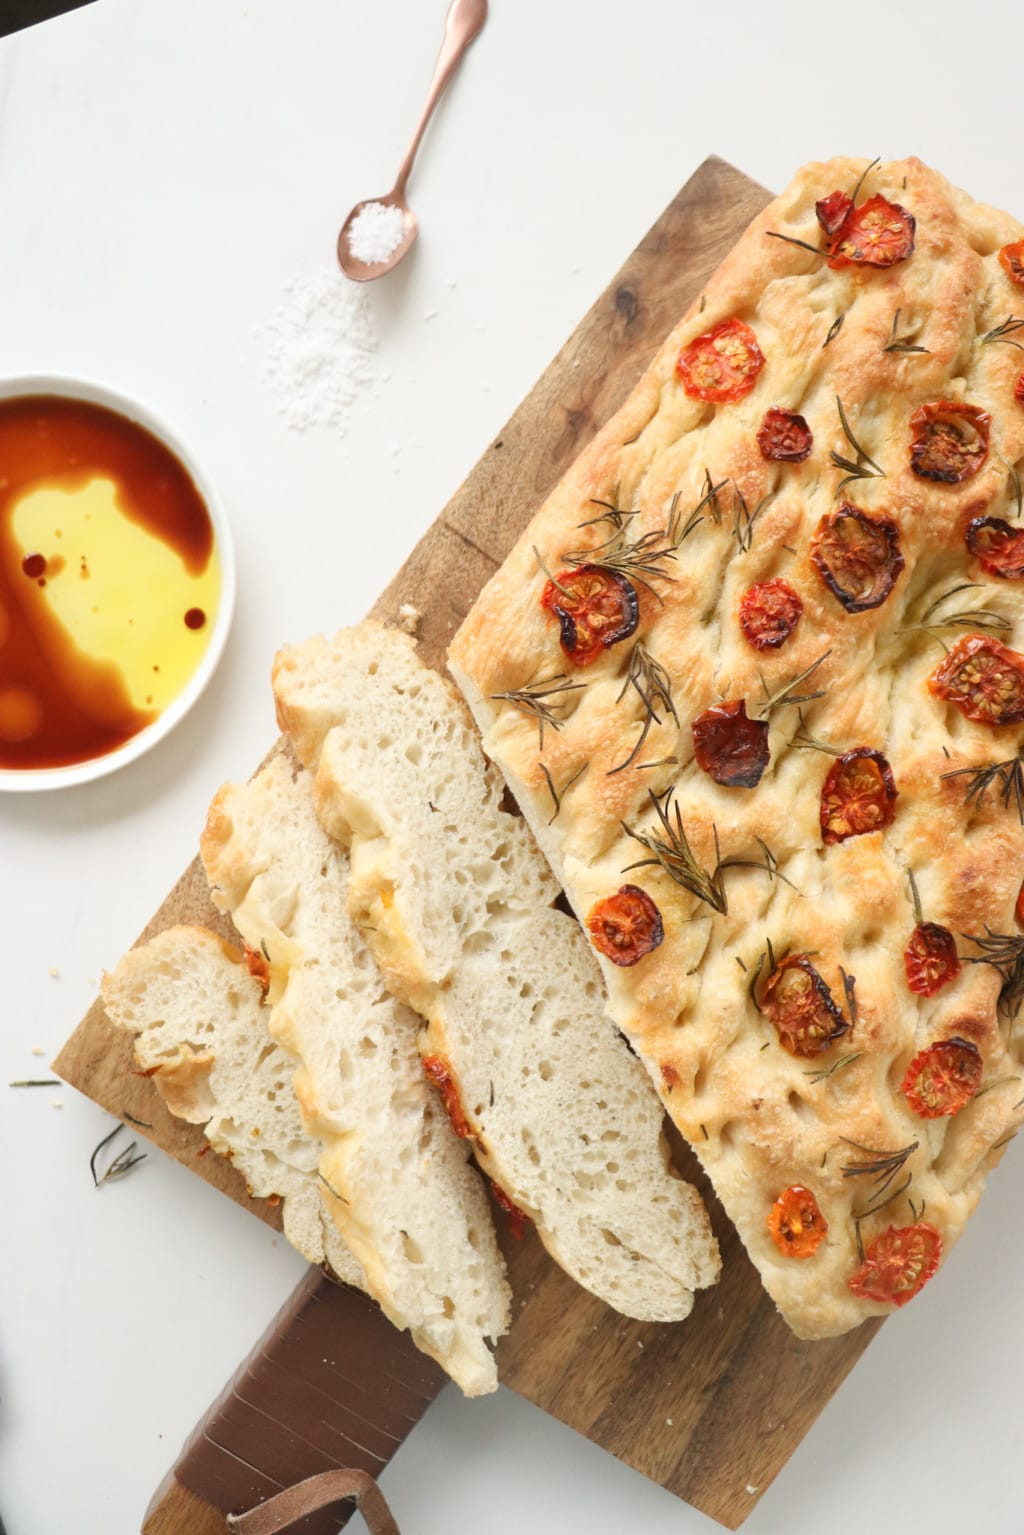 5-ingredient focaccia bread made with all purpose flour, salt, yeast, water, and olive oil topped with sundried tomatoes and rosemary placed on a wooden cutting board with a white dish beside it of balsamic vinegar.